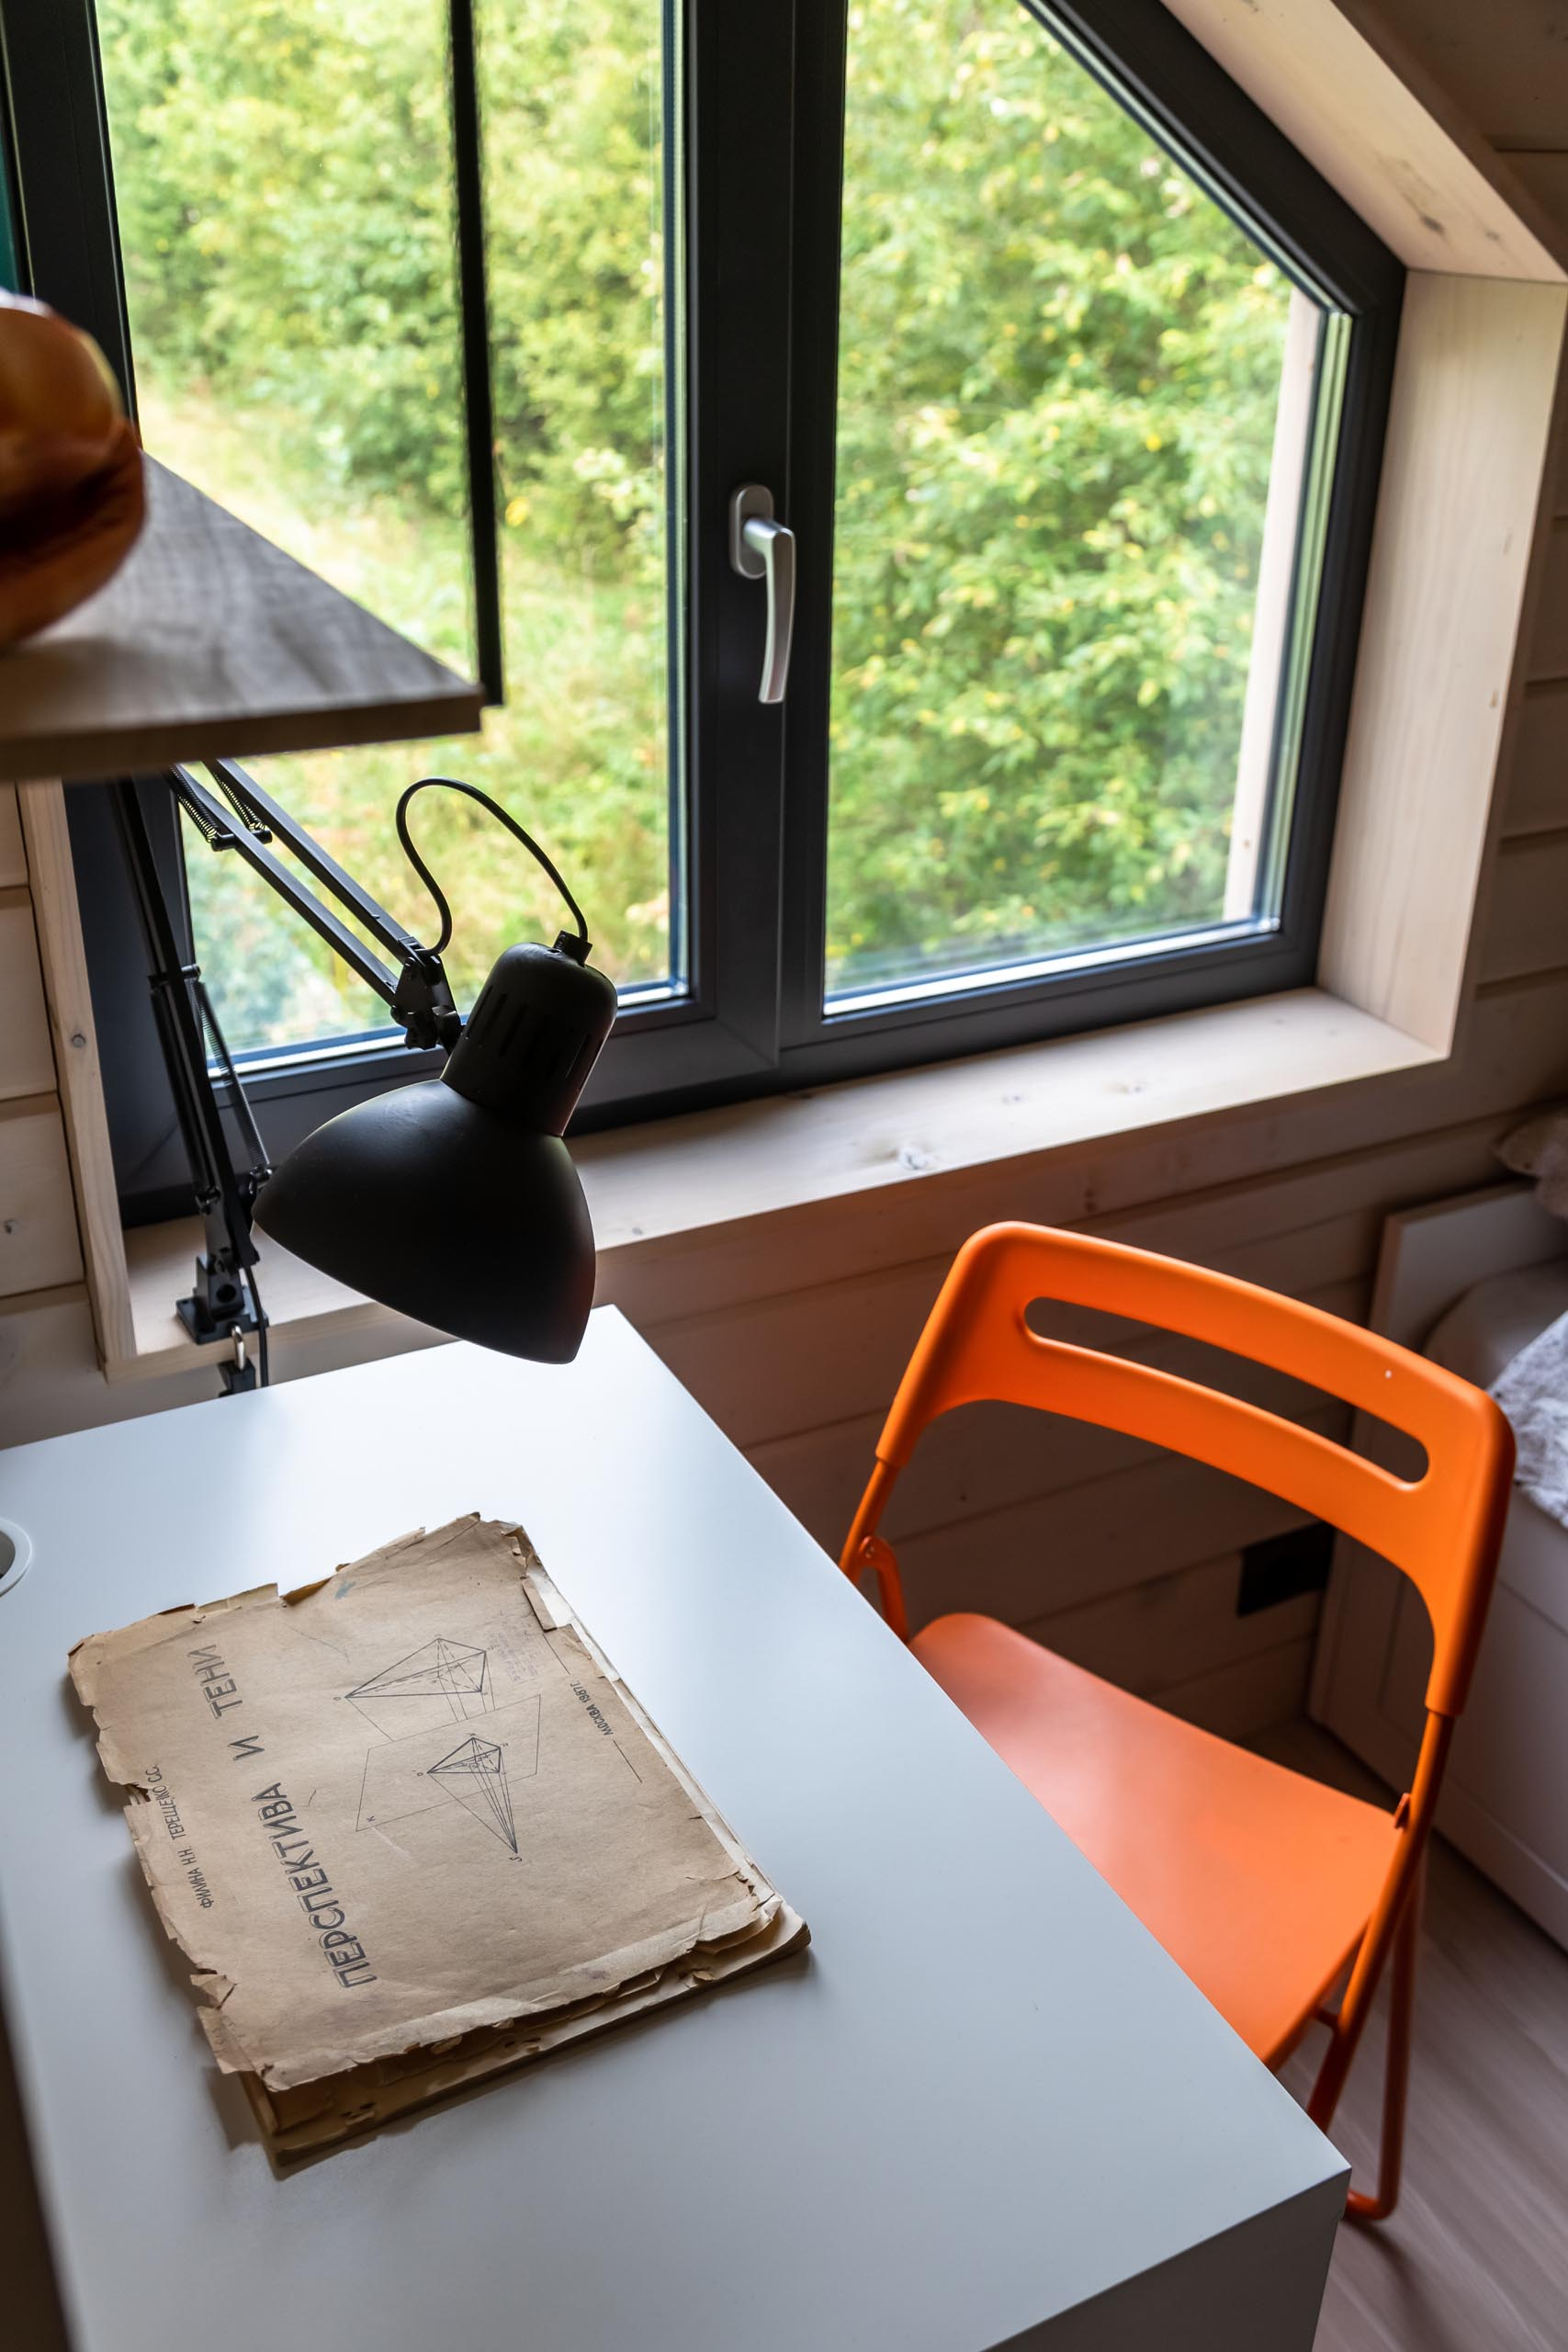 A modern kid's bedroom with tongue and groove wood siding, a white desk, black light, and orange chair.